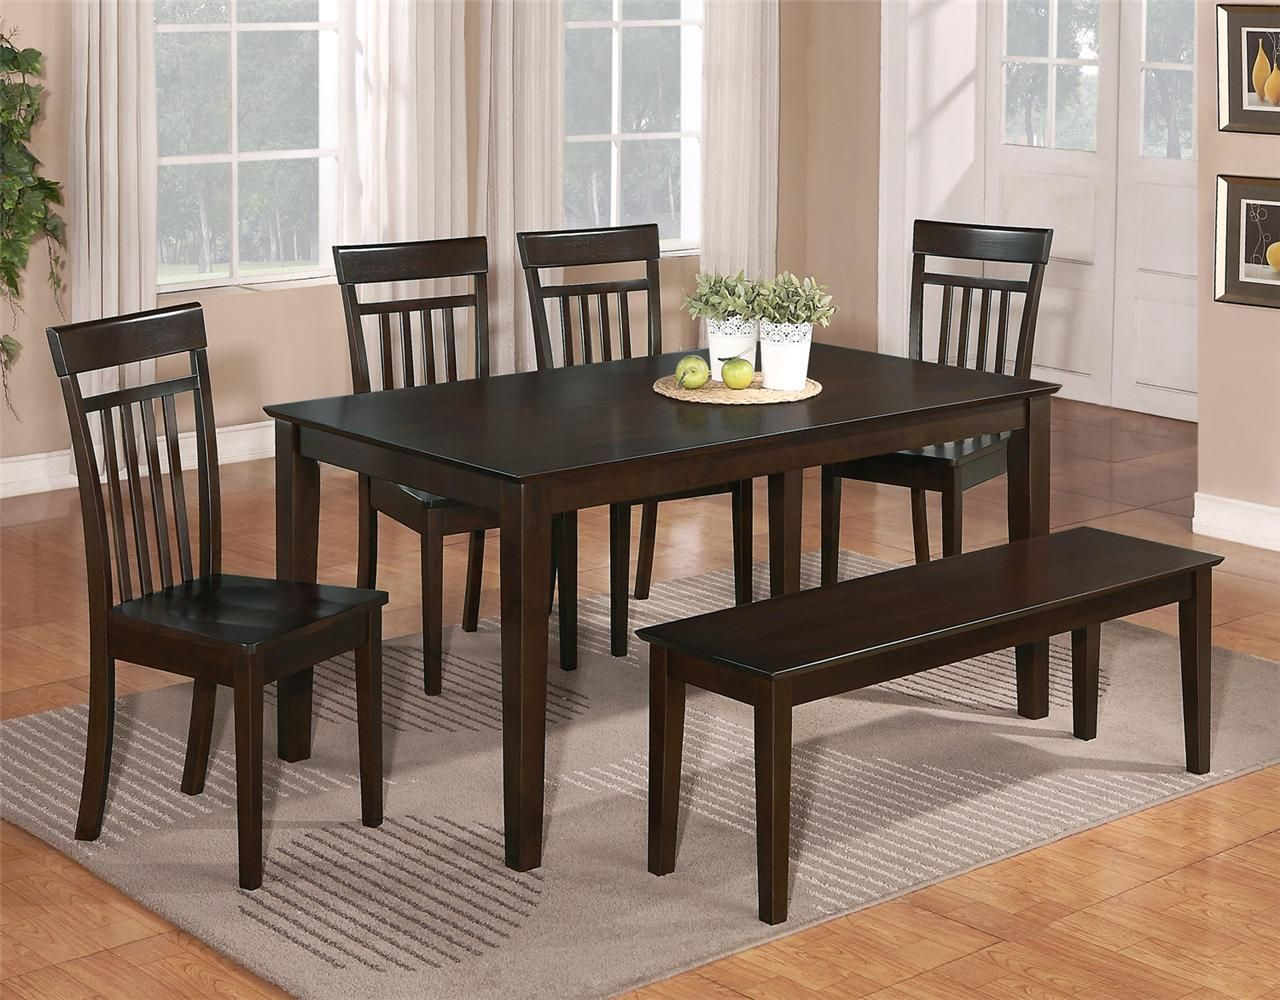 Inspiration about Well Known Smyrna 3 Piece Dining Sets Intended For 6 Pc Dinette Kitchen Dining Room Set Table W/4 Wood Chair And 1 (#7 of 20)